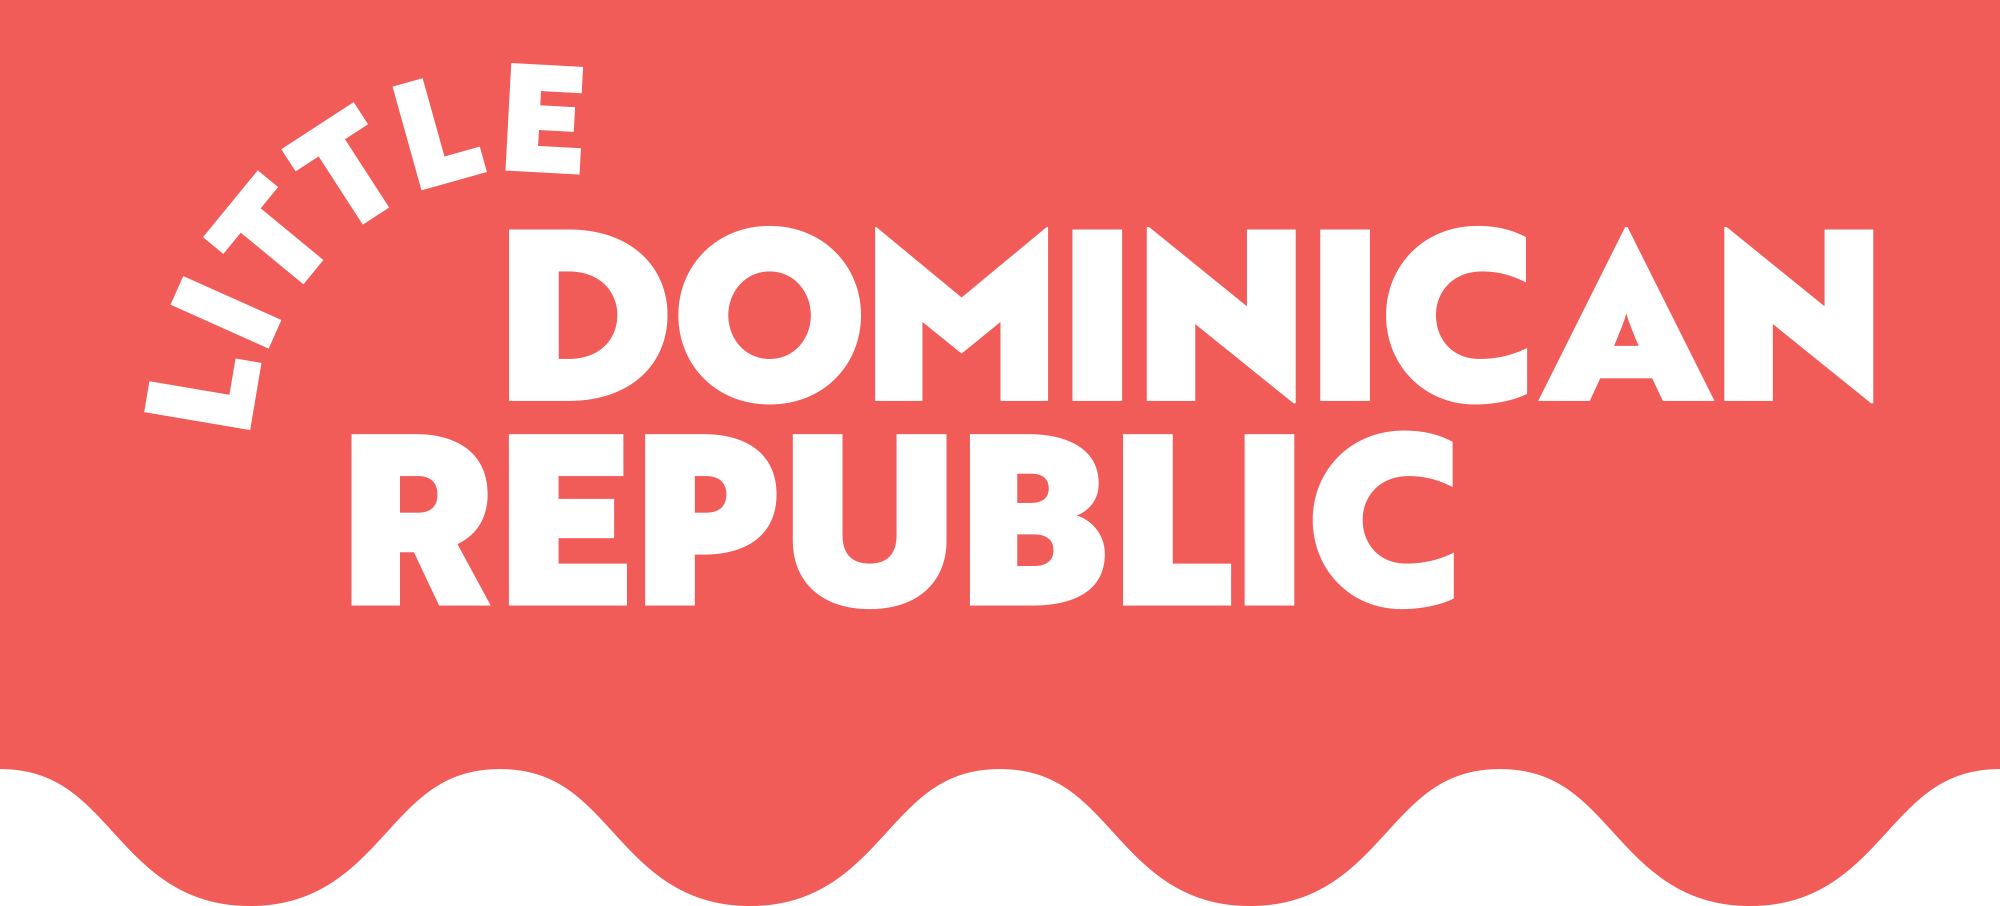 Little Dominican Republic